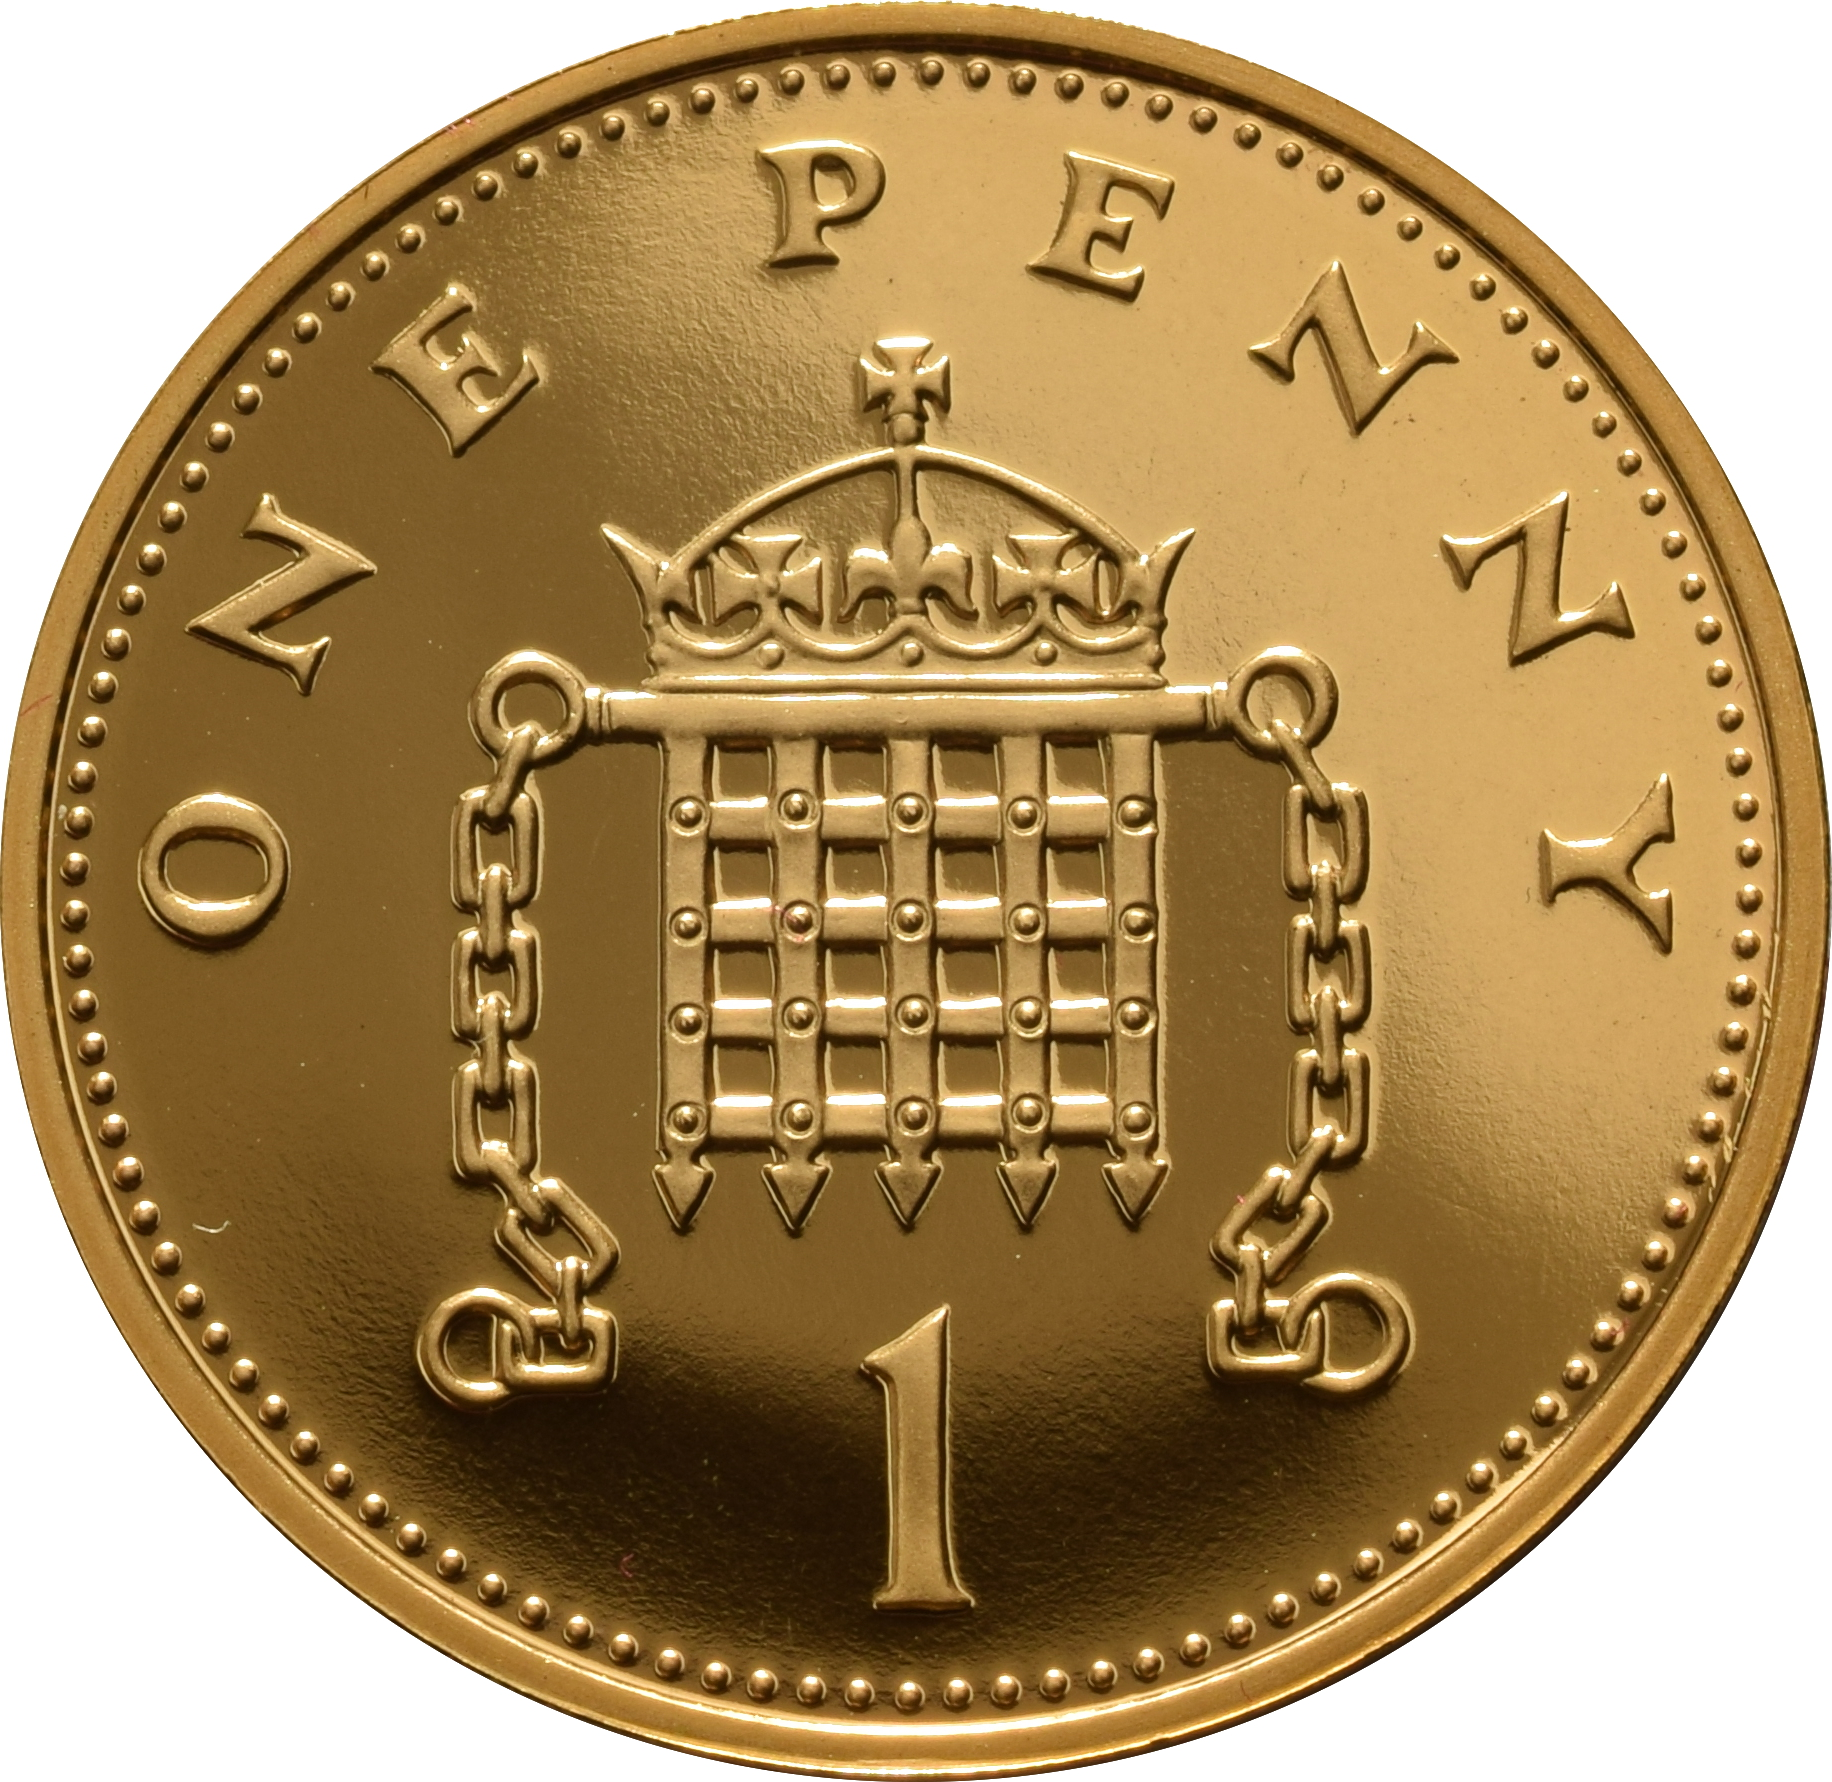 Gold One Penny Piece Buy 1p Gold Currency Coins At